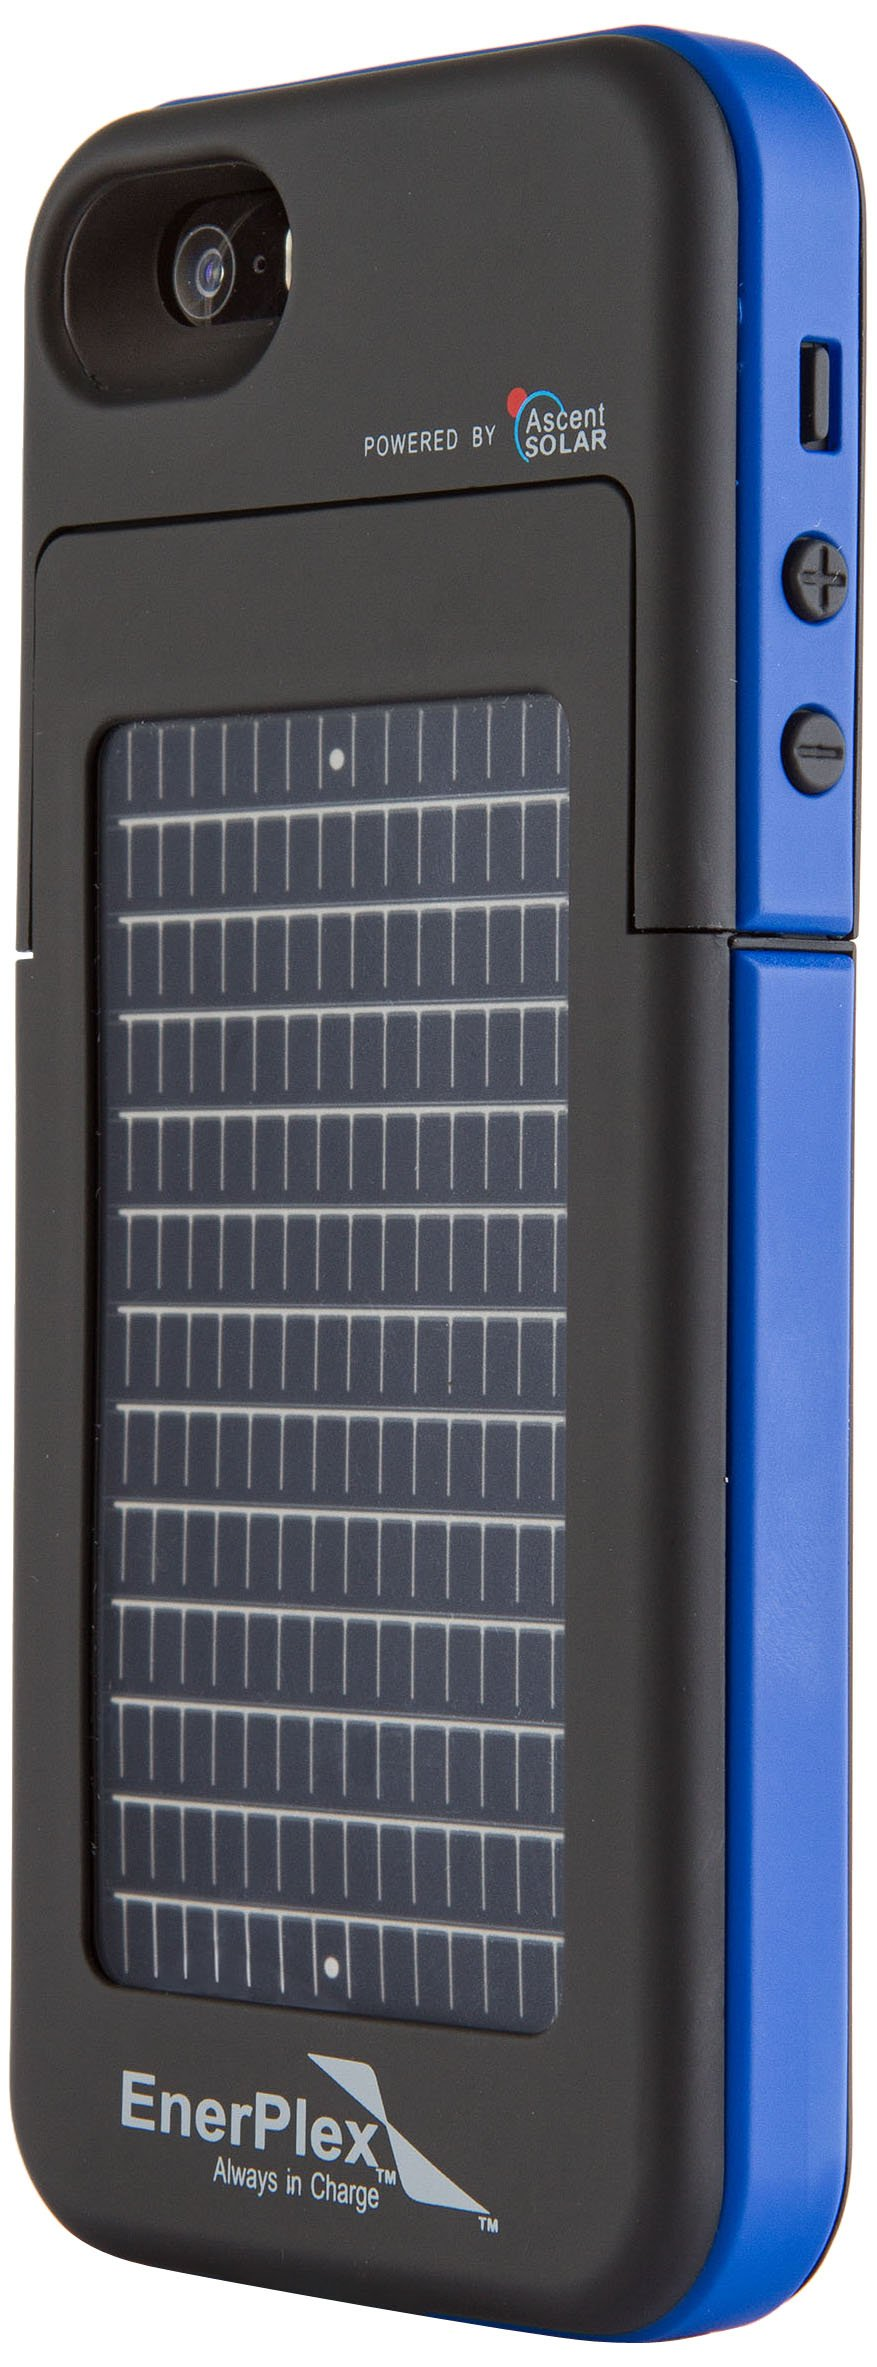 EnerPlex Surfr Ultra Slim Battery Backup & Solar Powered Case for iPhone SE/5/5S, Black/Blue, SFI-2000-BL